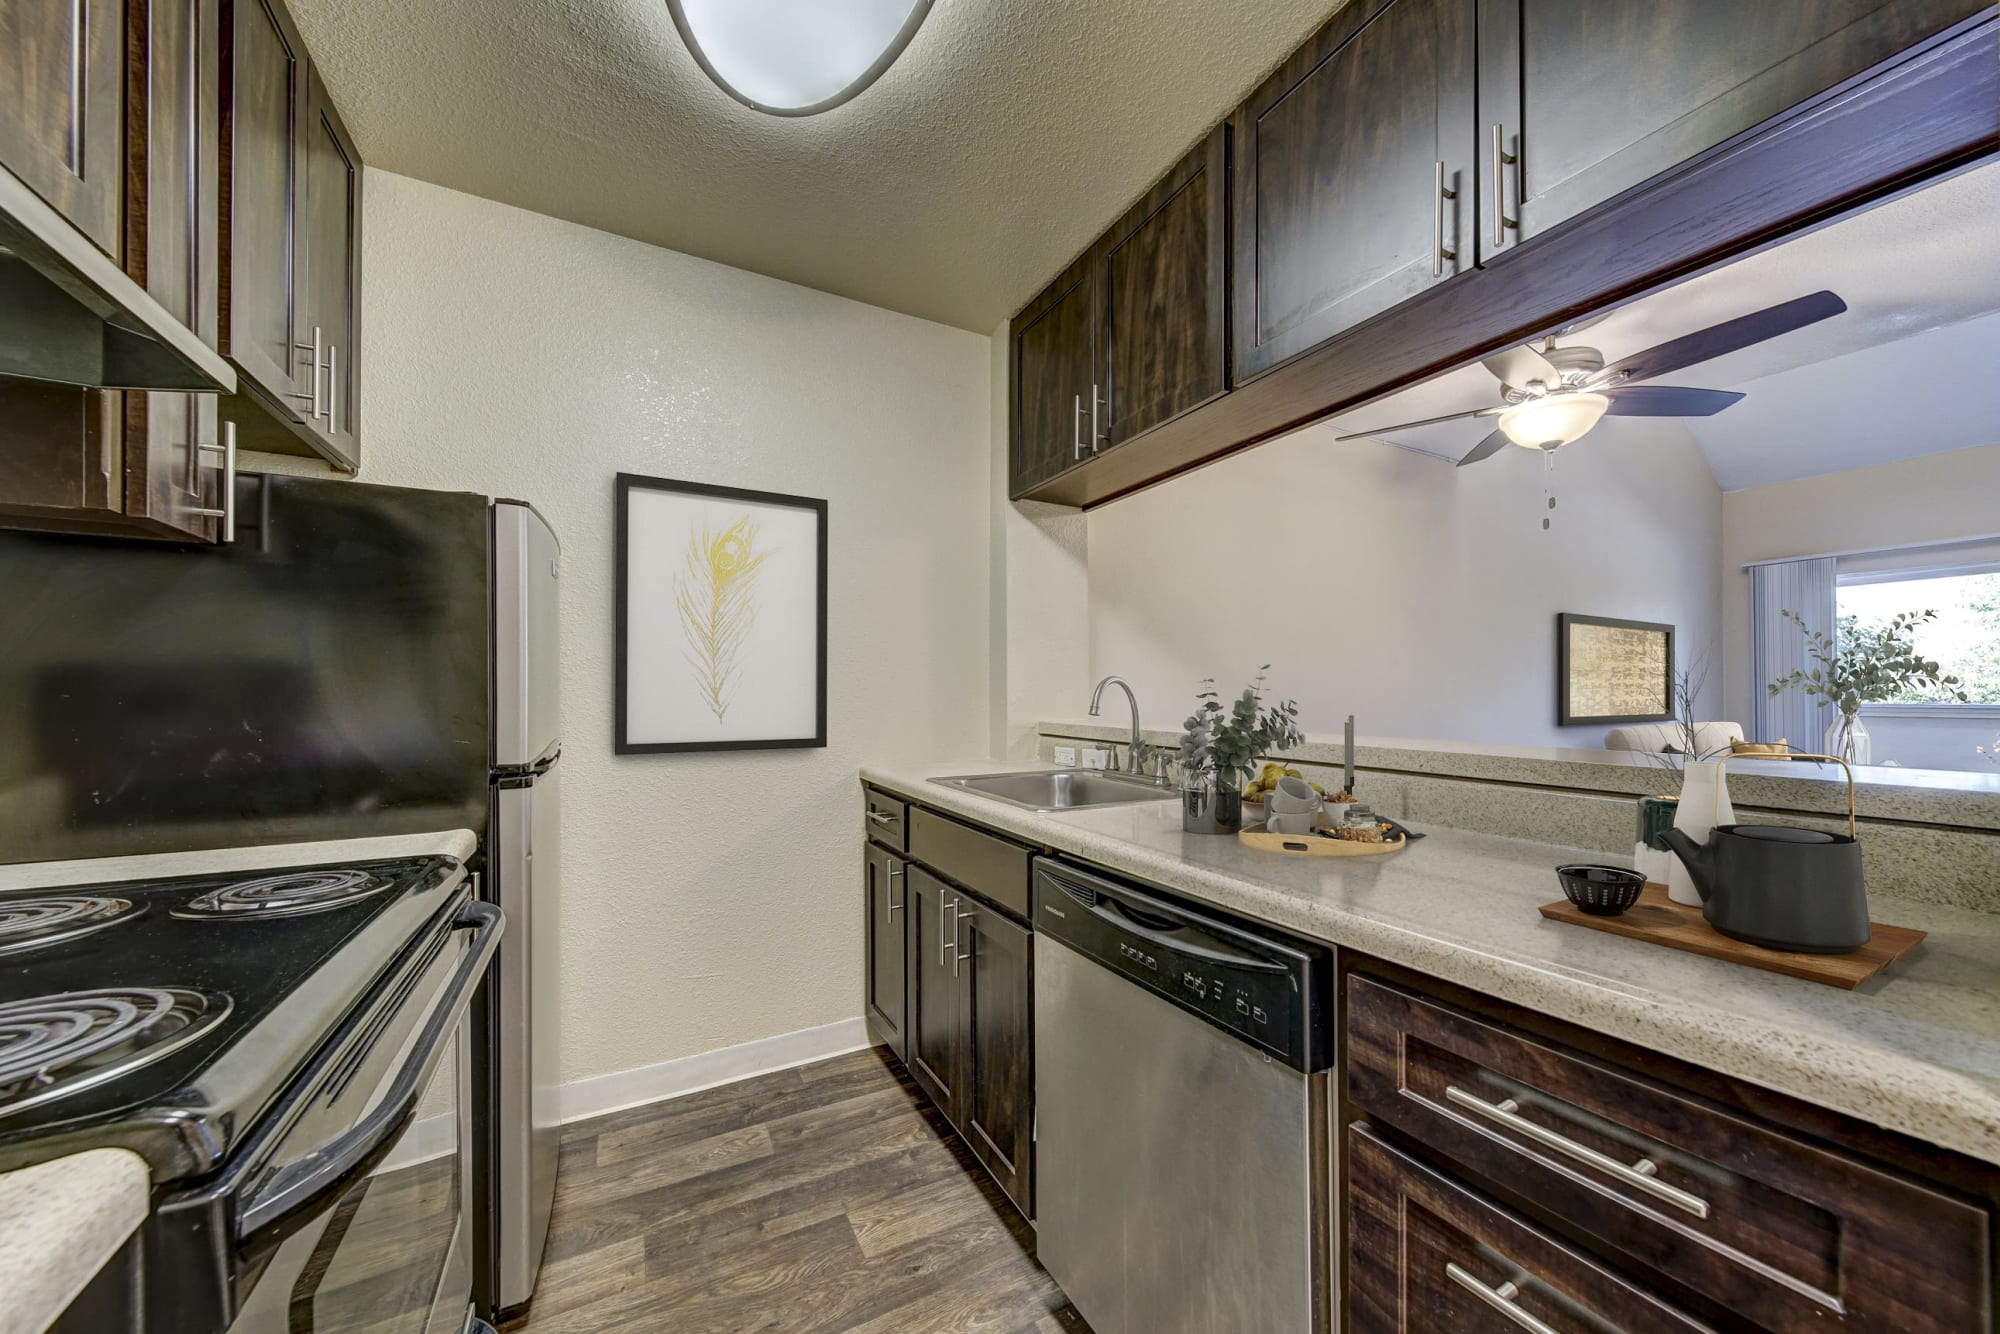 Renovated kitchen with stainless steel appliances at The Timbers Apartments in Hayward, California